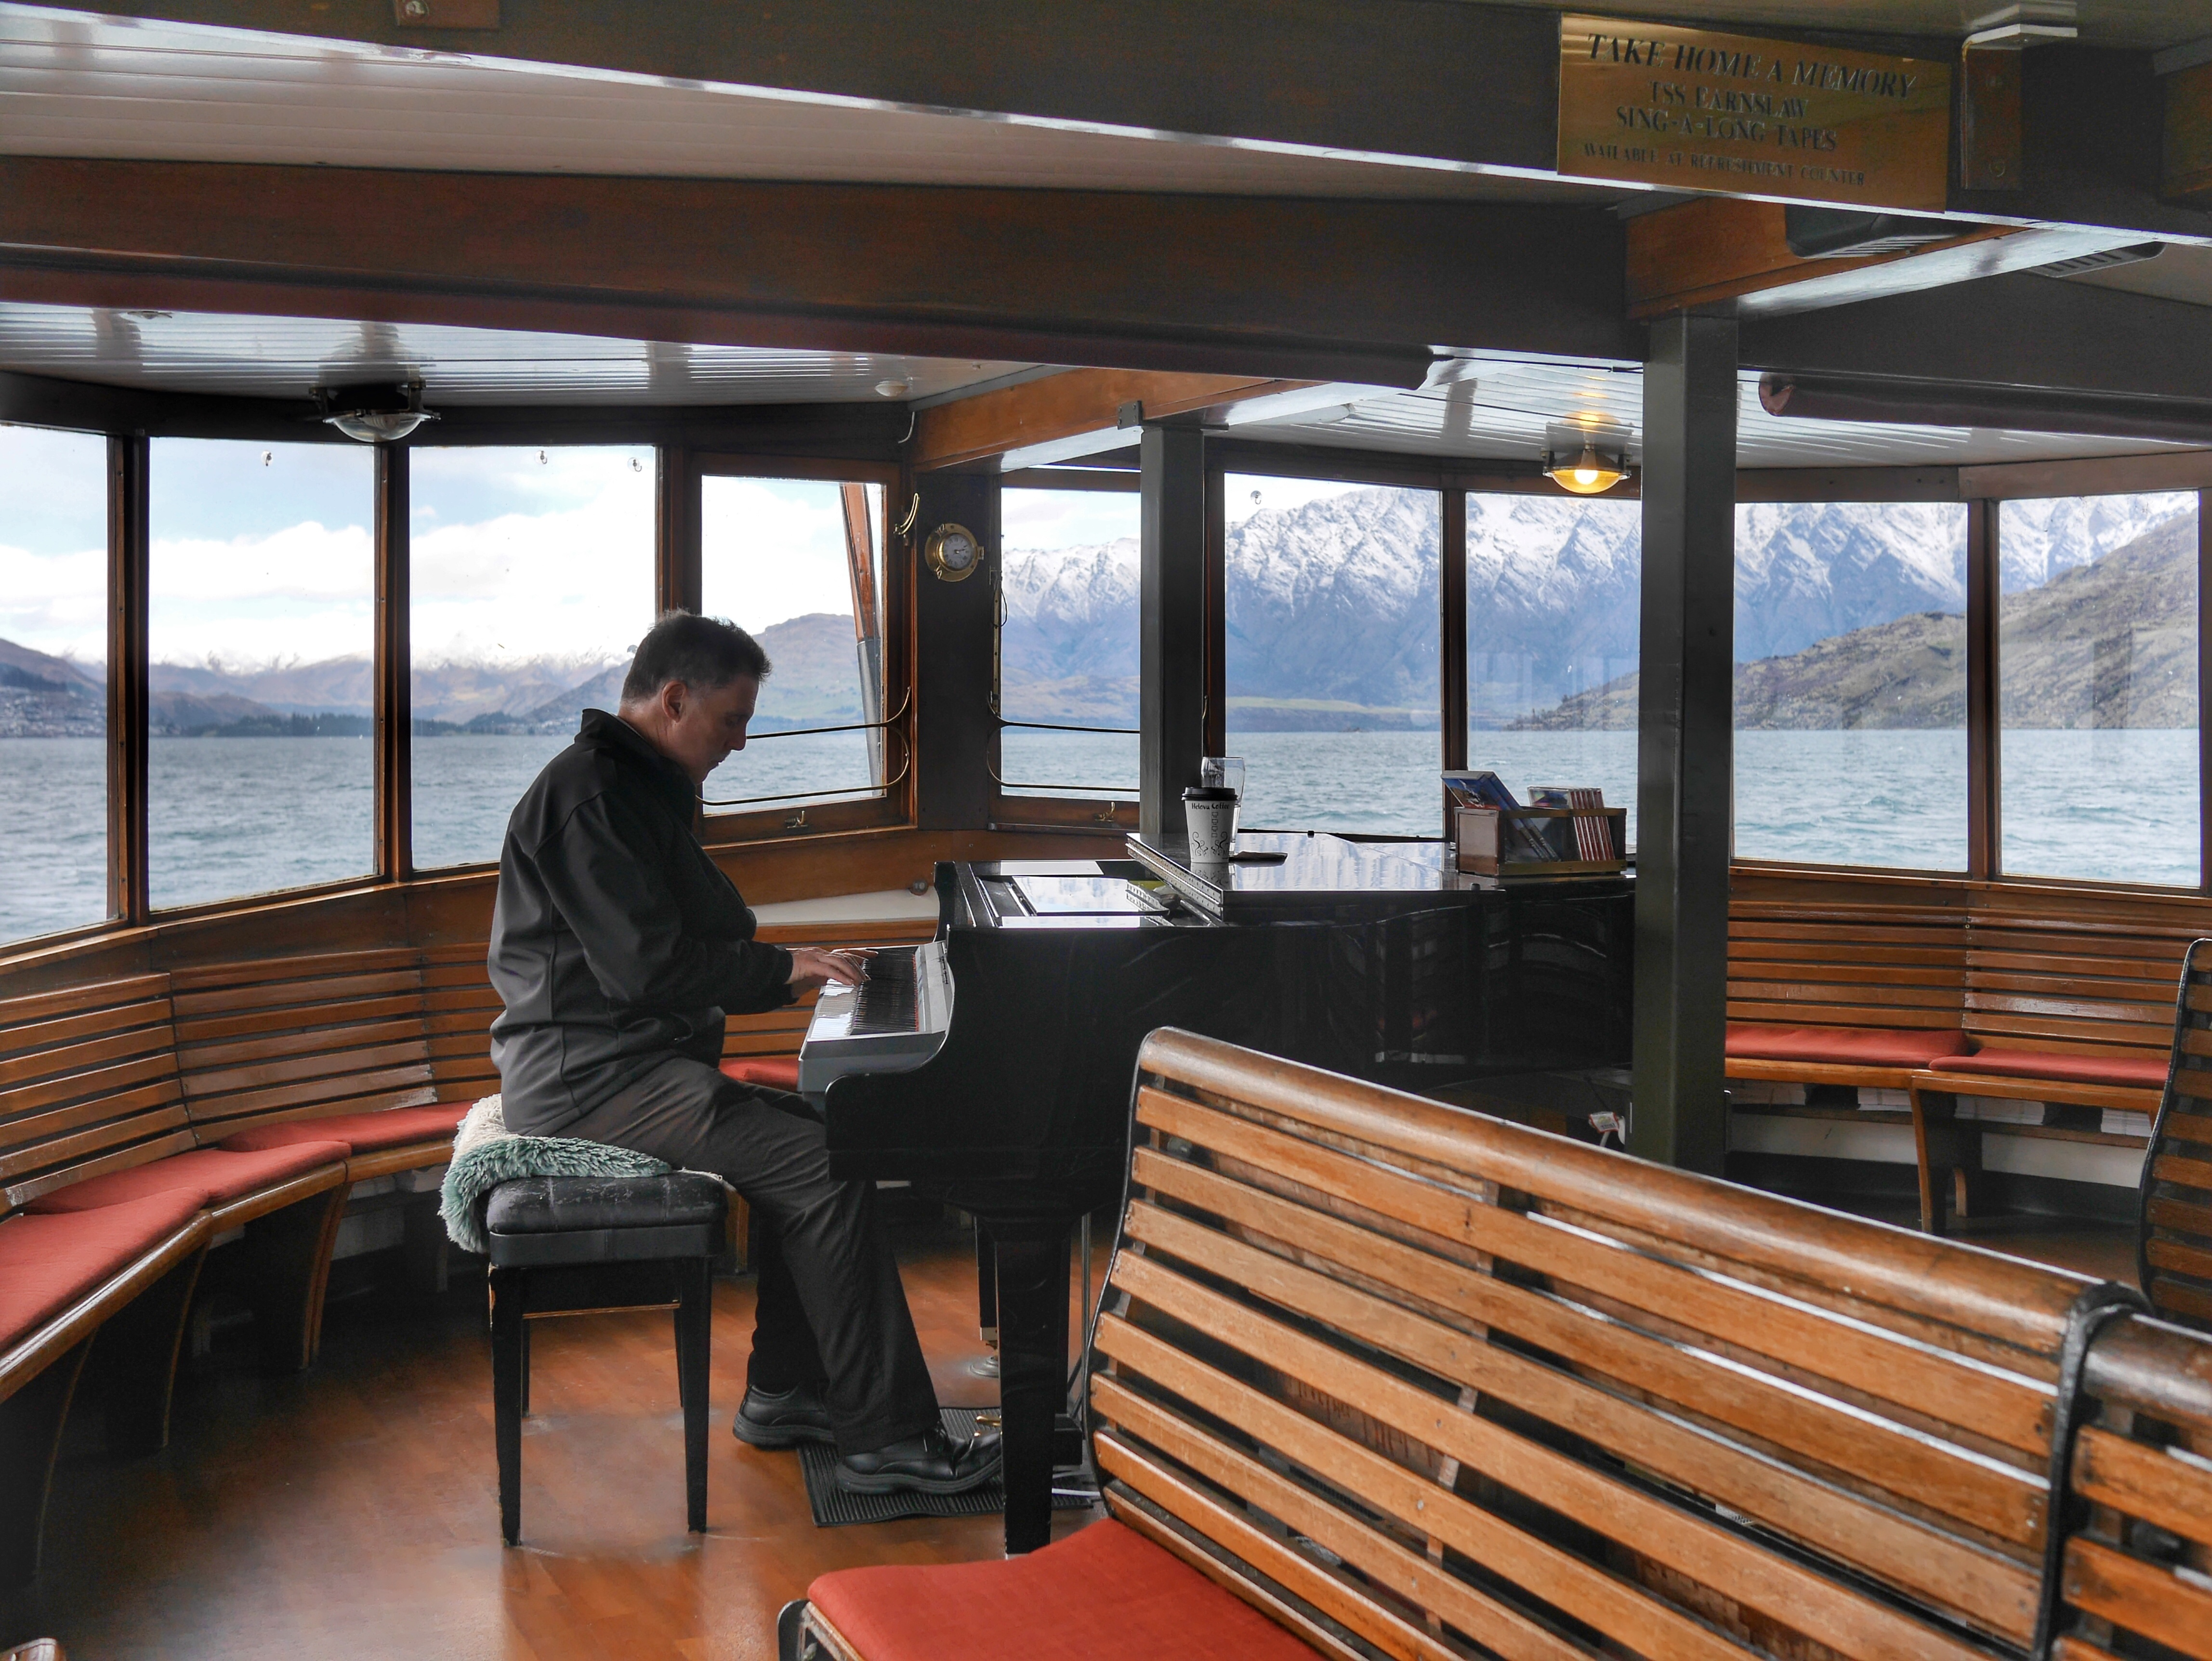 Pianist on TSS Earnslaw on Lake Wakatipu thesweetwanderlust.com